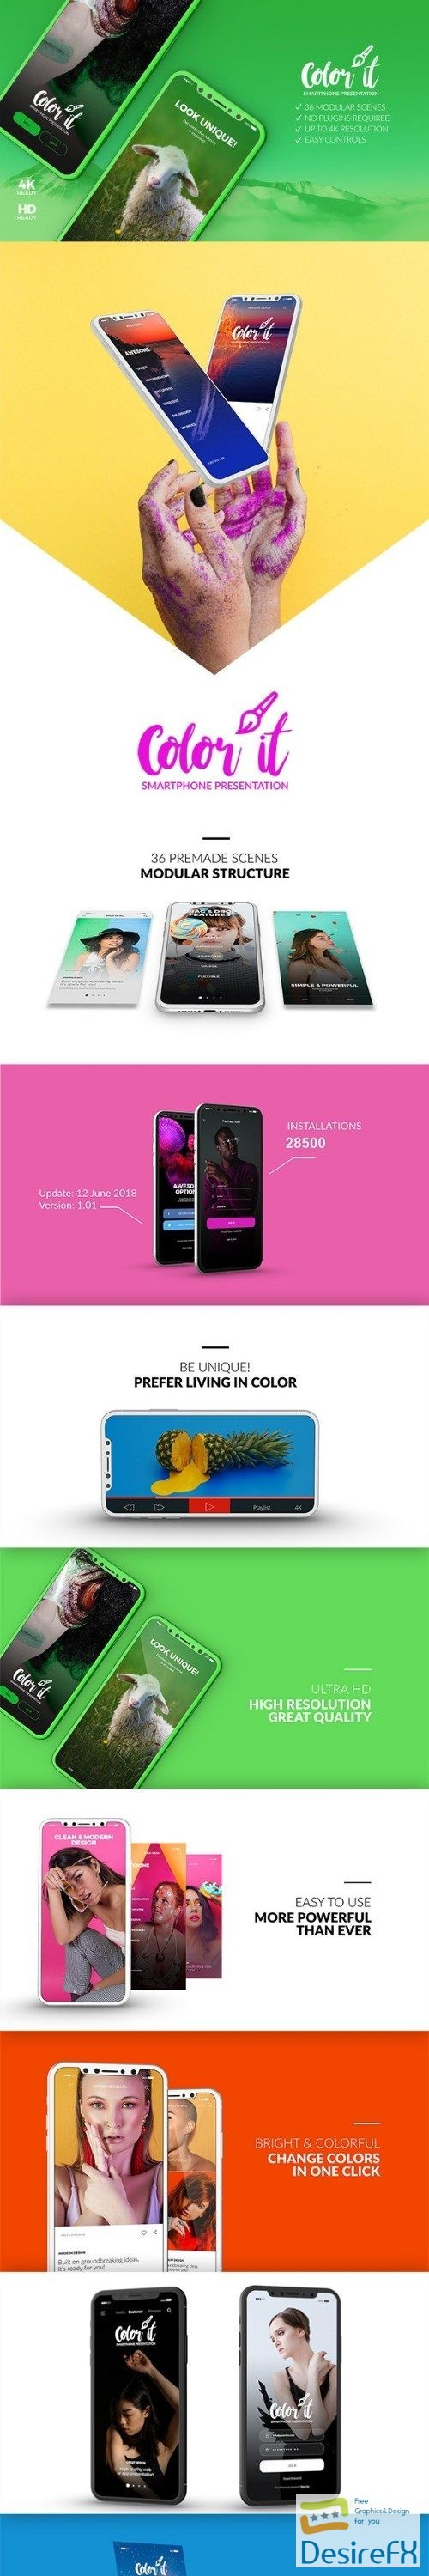 after-effects-projects - Videohive Color it - 3D Smartphone Presentation 22328414